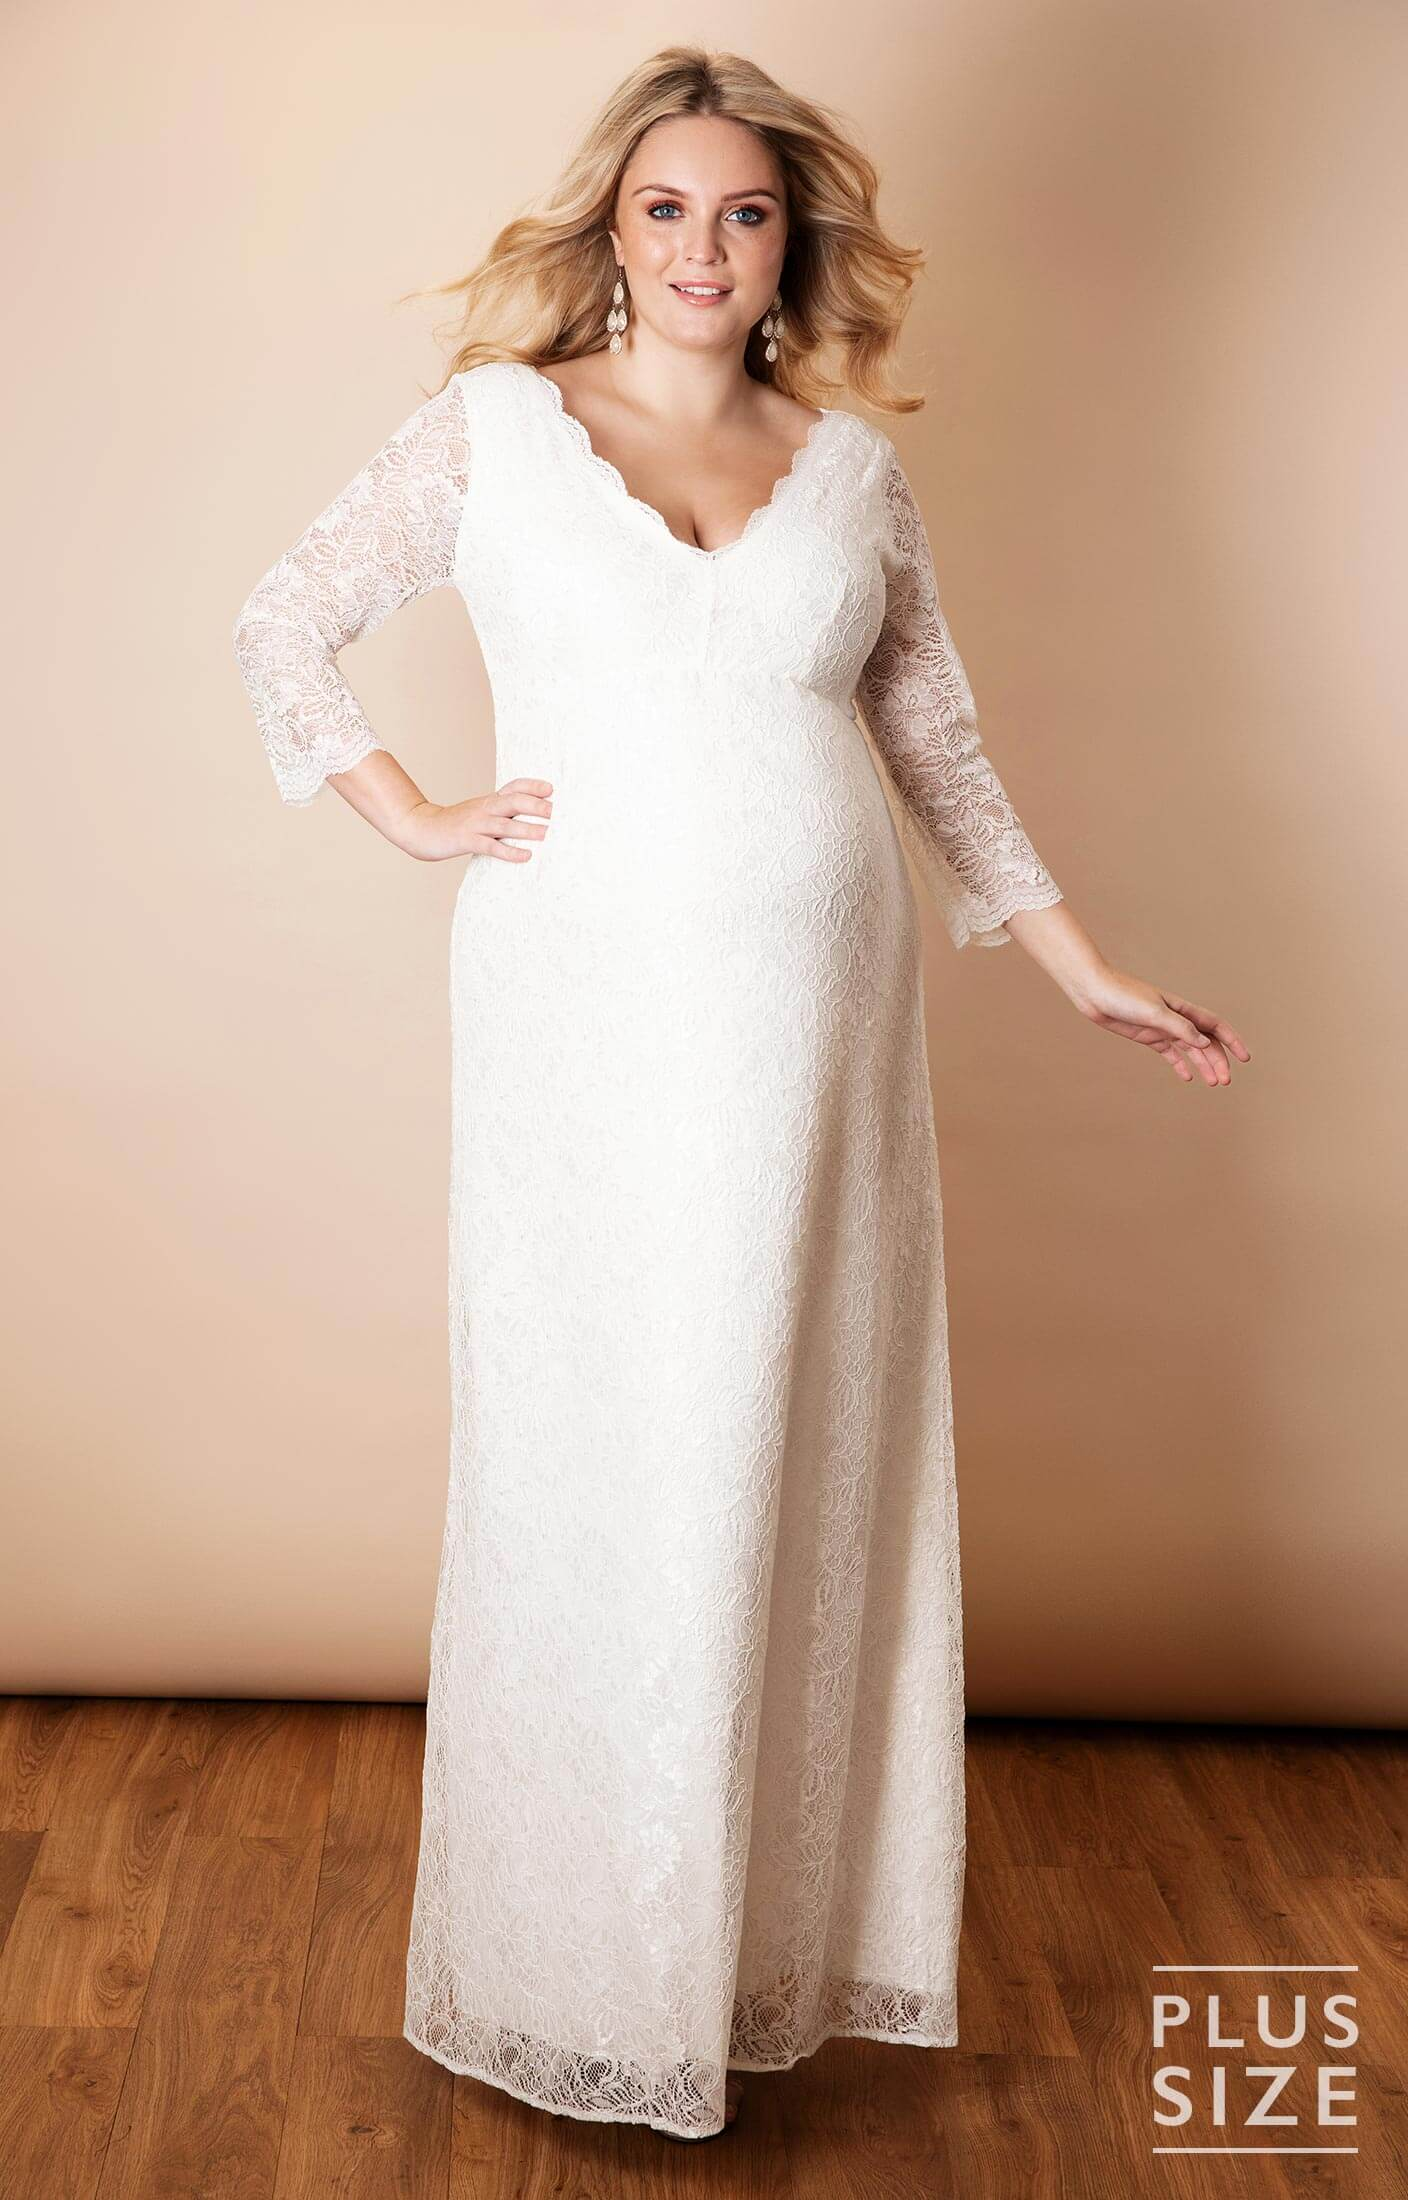 Chloe Lace Plus Size Maternity Wedding Gown Ivory - Maternity Wedding  Dresses, Evening Wear and Party Clothes by Tiffany Rose